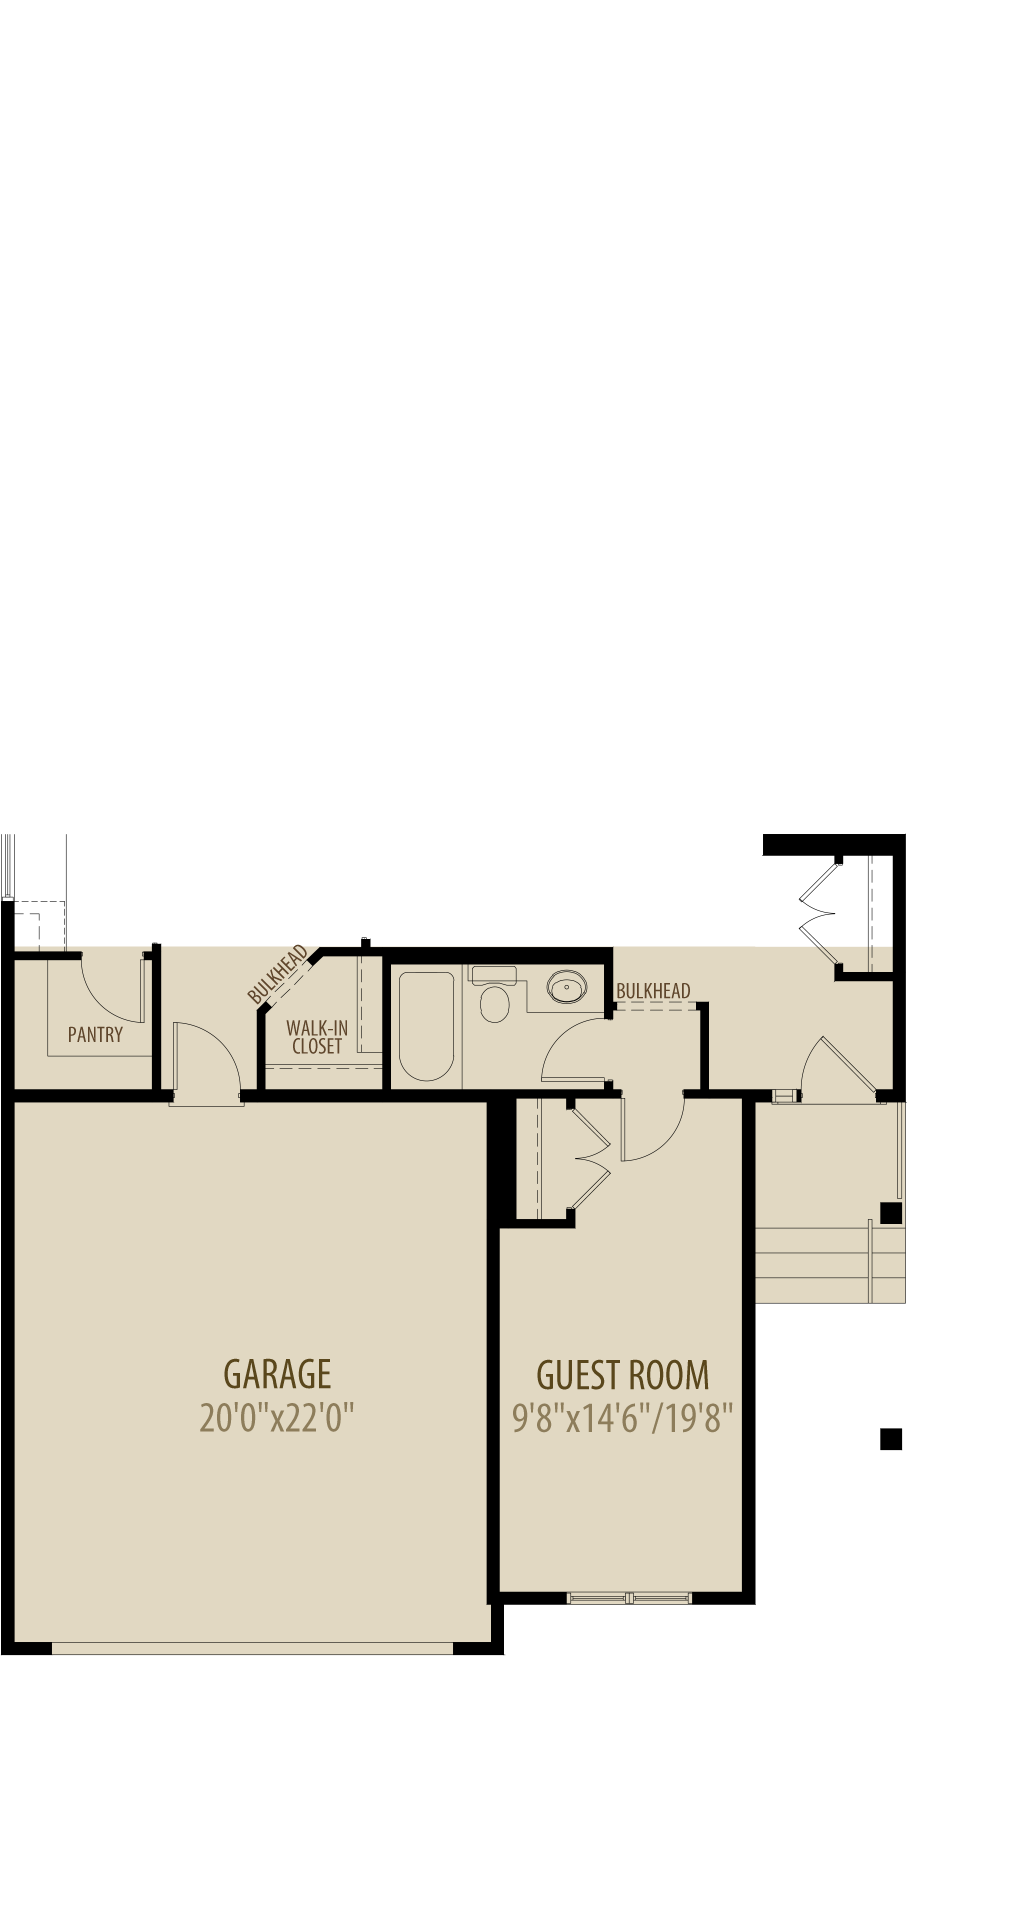 Guest Room adds 213 sq ft